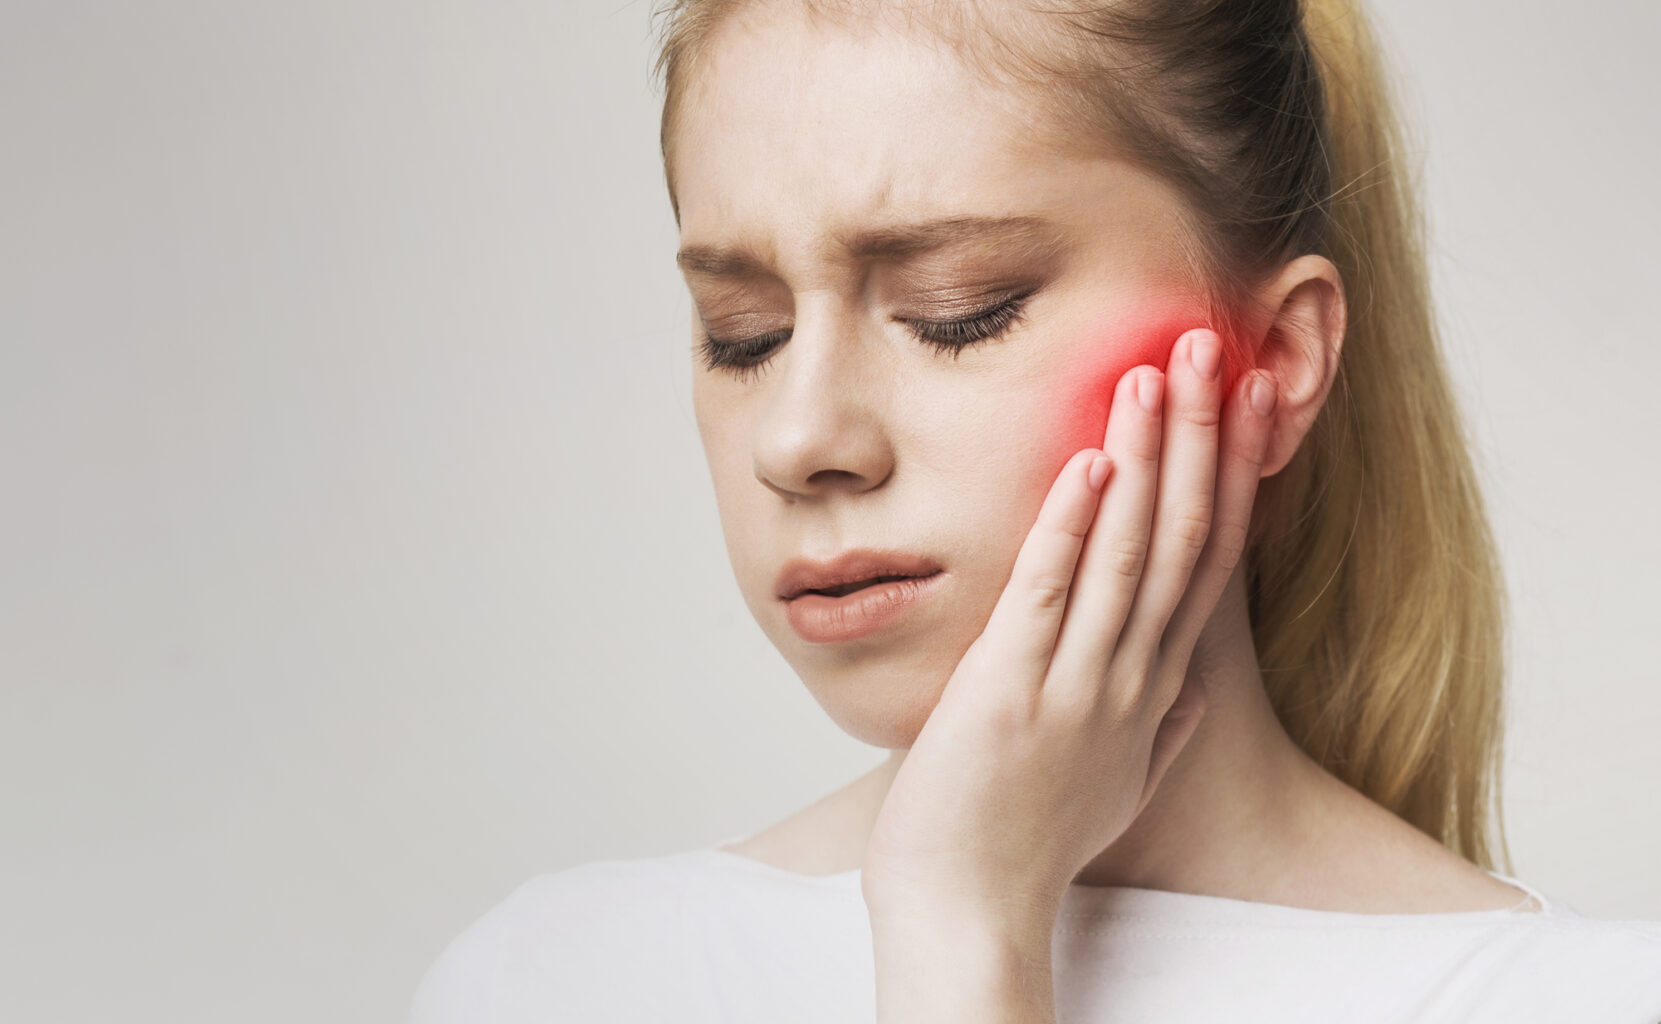 young woman touching face because of jaw pain on white background